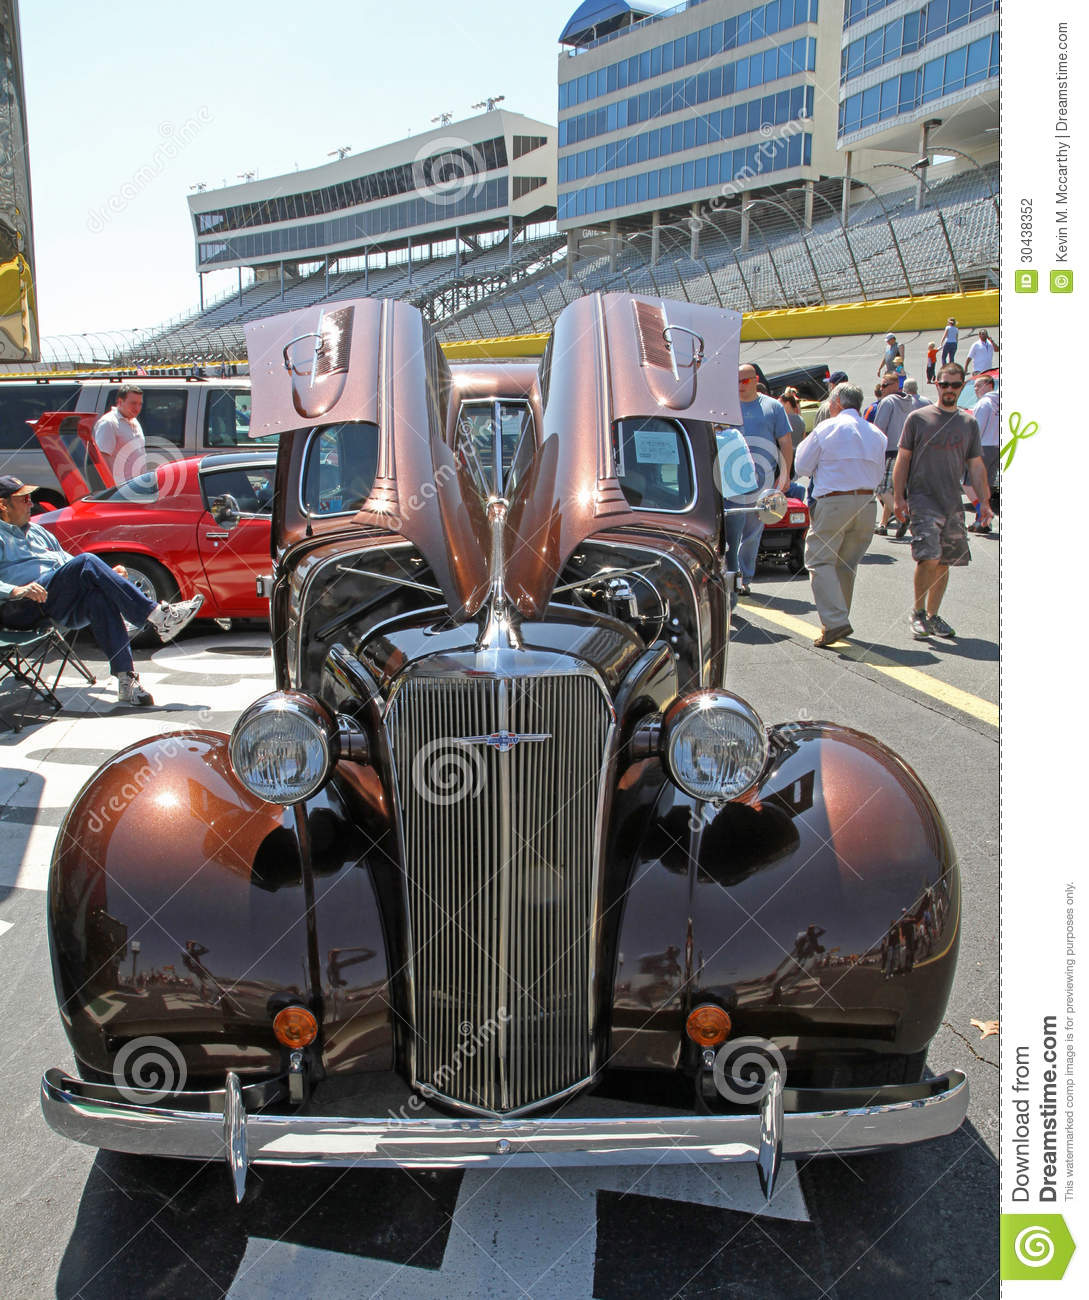 Antique chevrolet automobile editorial photography image for Auto fair at charlotte motor speedway